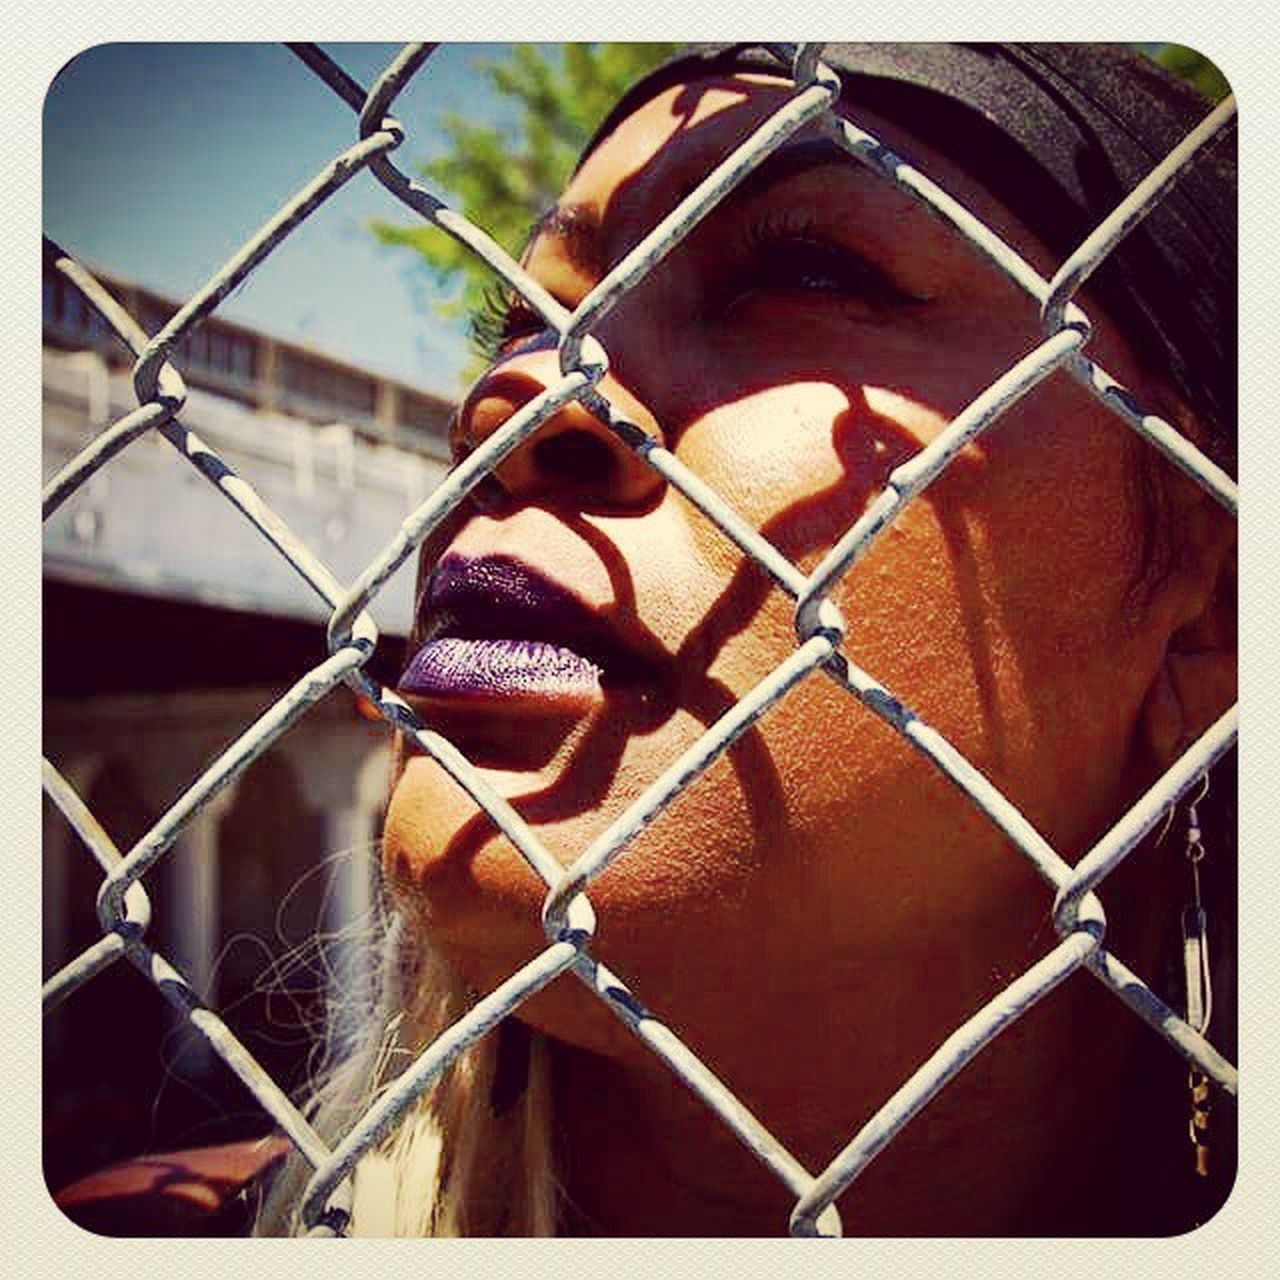 chainlink fence, safety, protection, danger, metal, one person, barbed wire, adult, cage, adults only, young adult, human face, outdoors, people, headshot, escape, day, close-up, only men, men, real people, one man only, mammal, young women